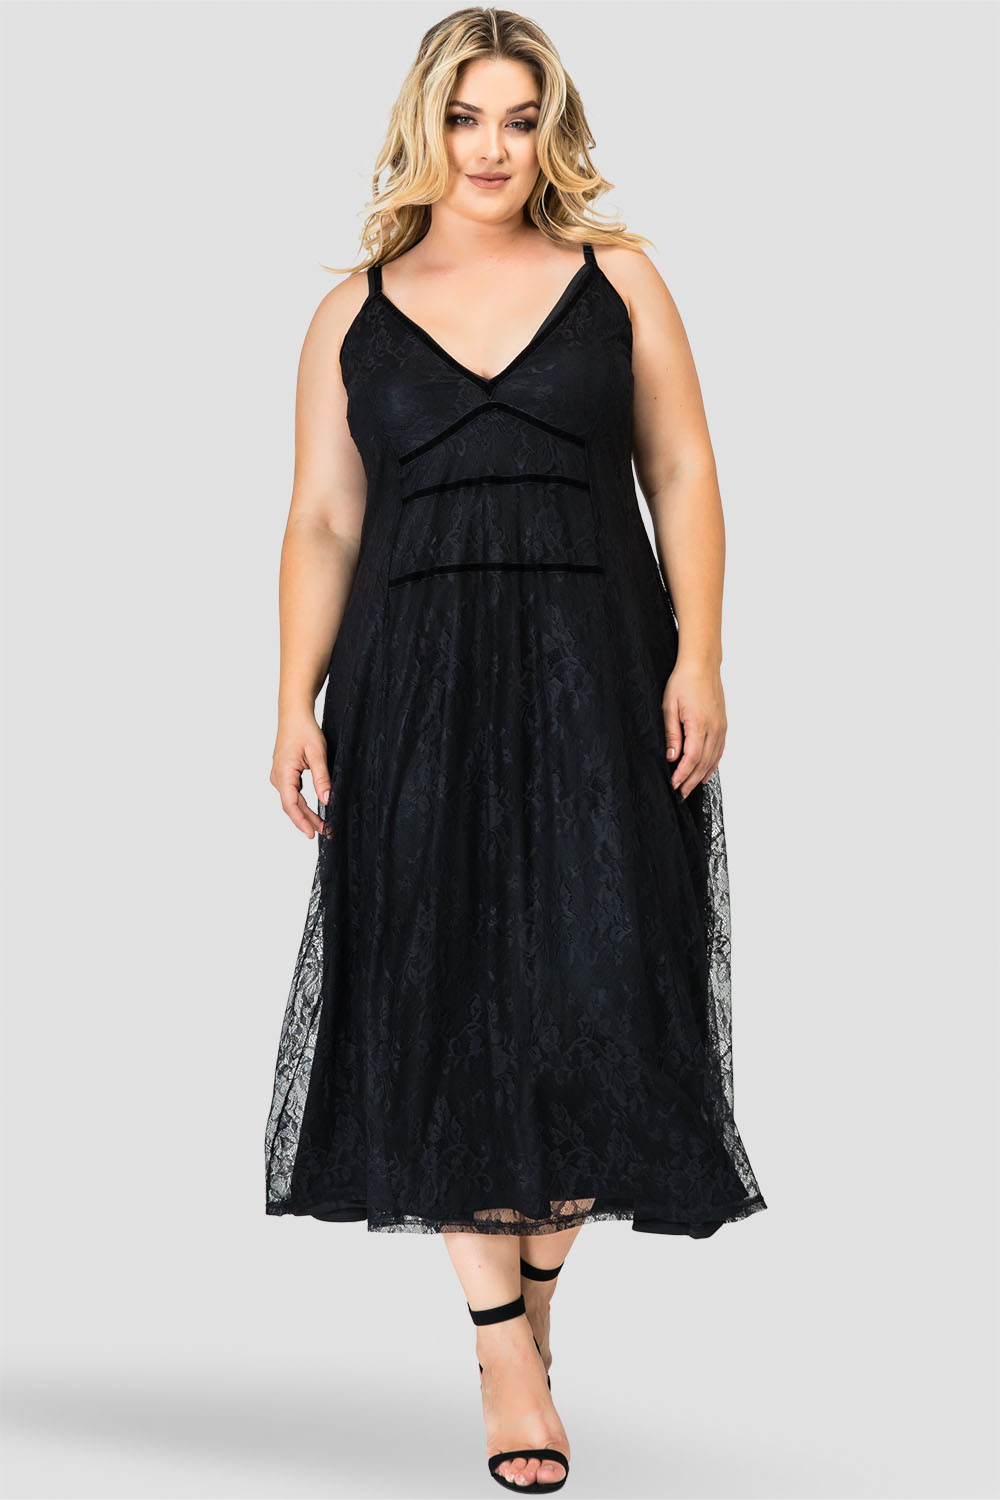 Plus Size Bethany Black Lace Tank A-Line Flounce Slip Dress with Liner